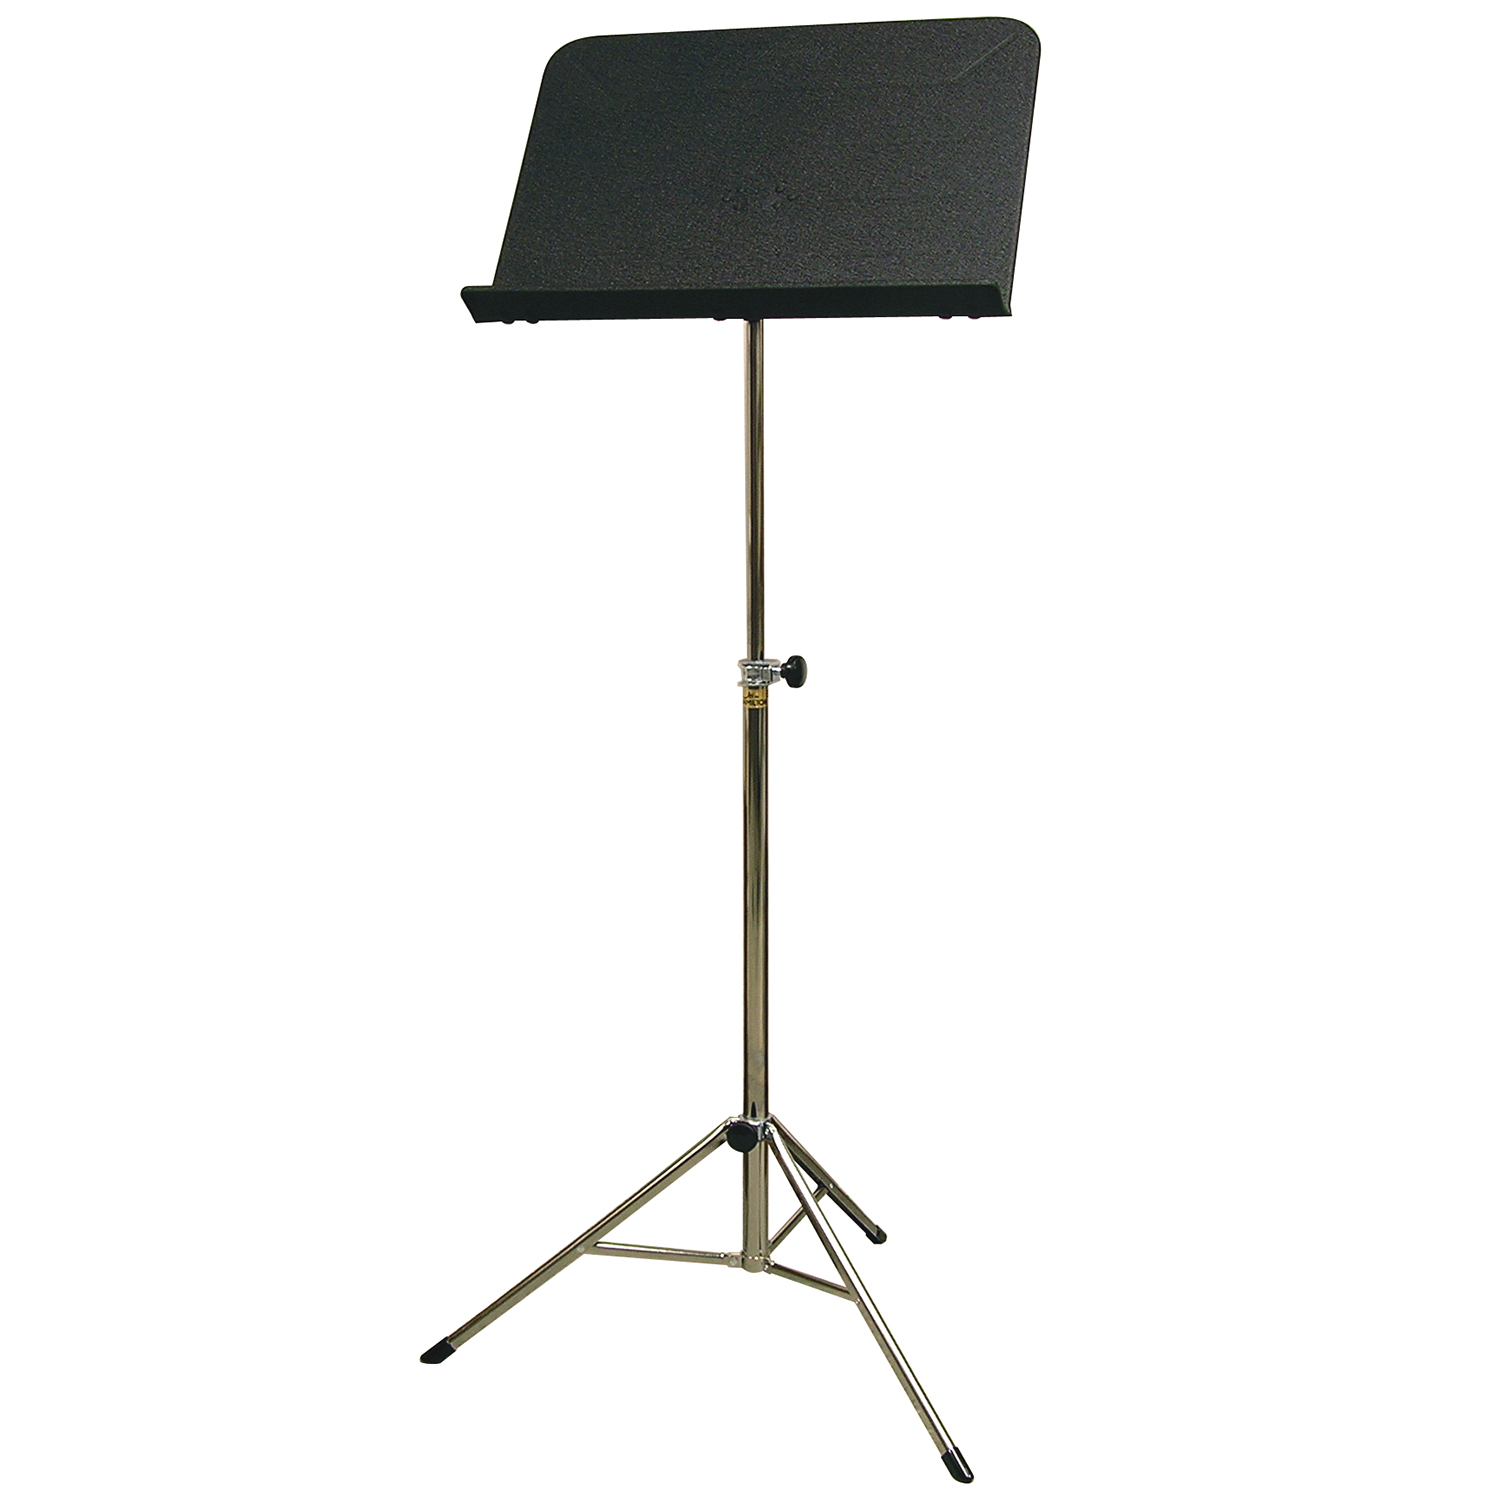 Hamilton Portable Symphonic Music Stand by Hamilton Stands